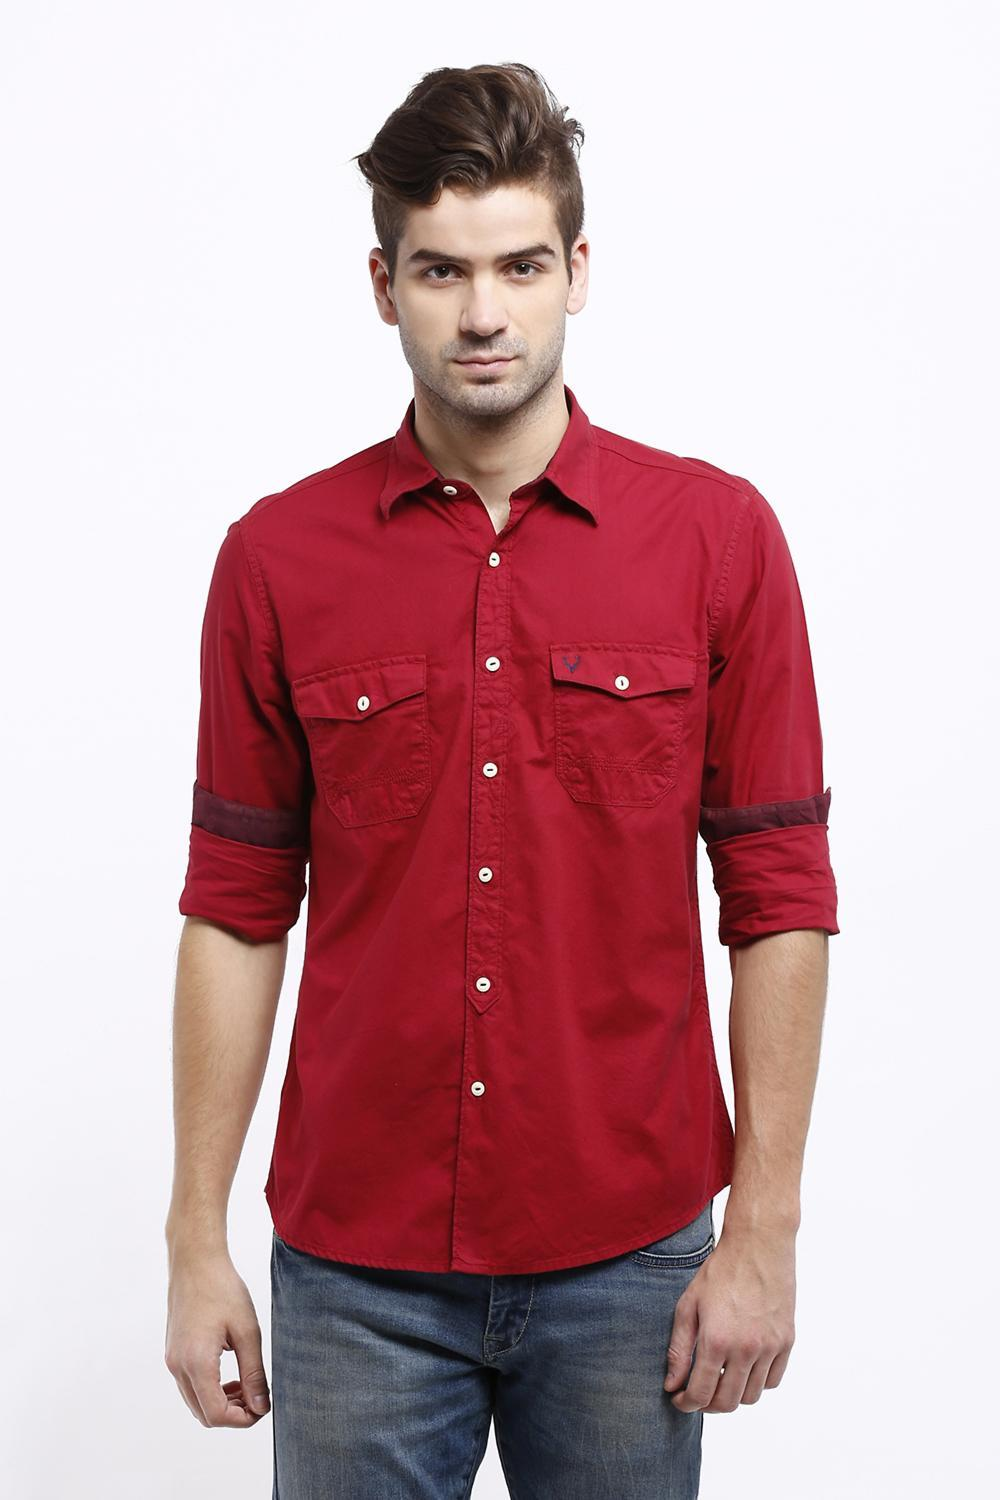 7d51328508 Solly Jeans Co Shirts